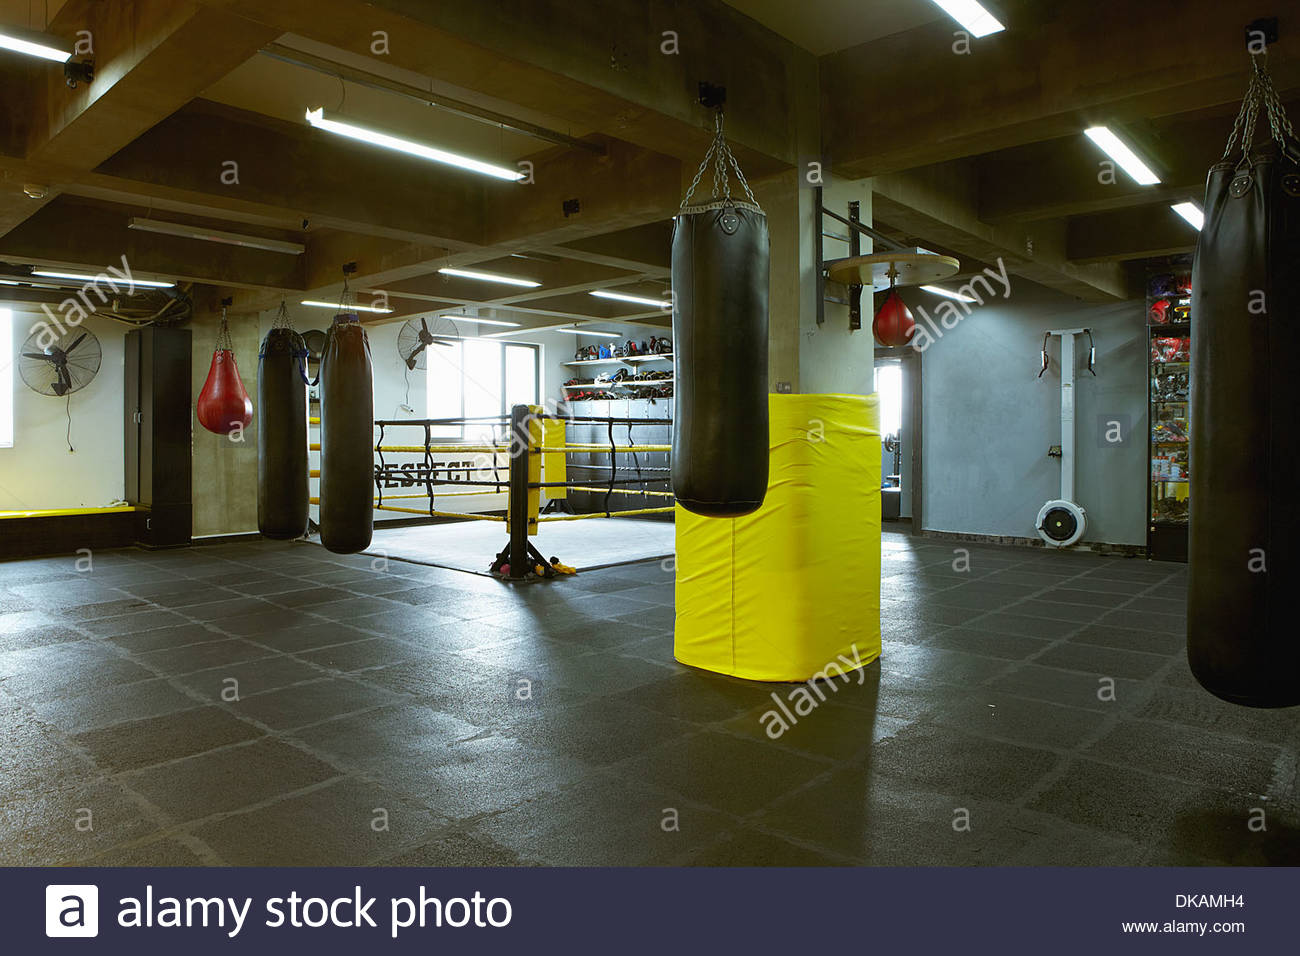 empty boxing gym - photo #11